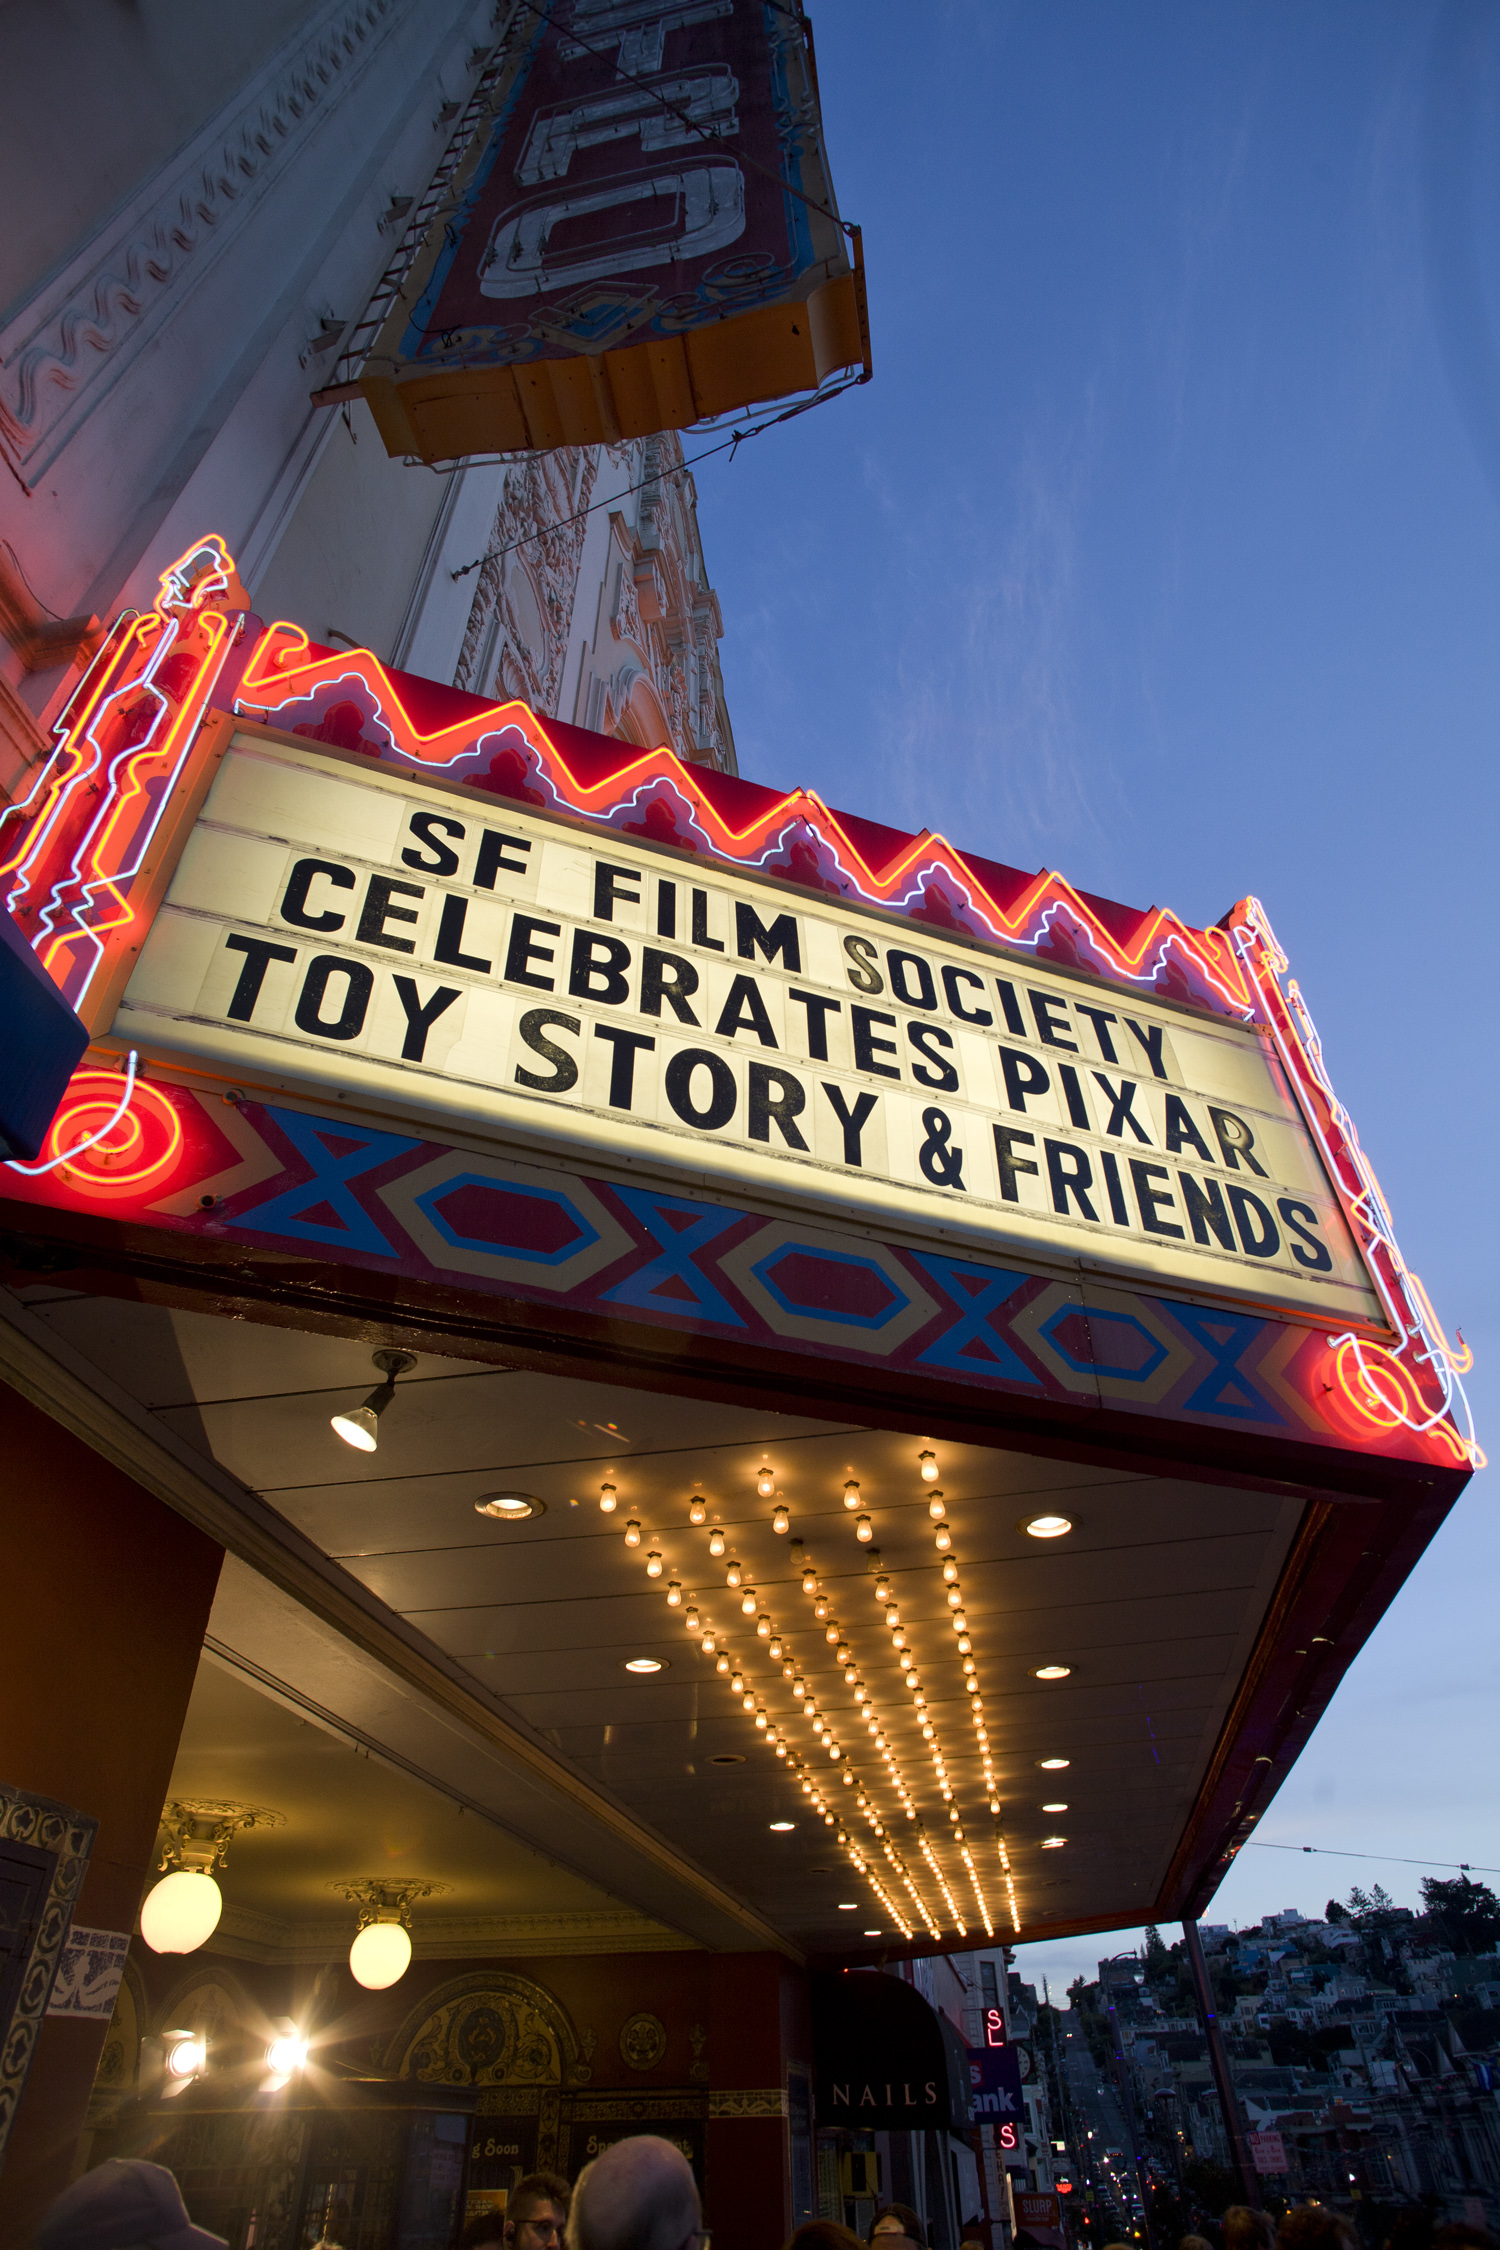 Castro marquee for our 20th Anniversary Celebration of Pixar